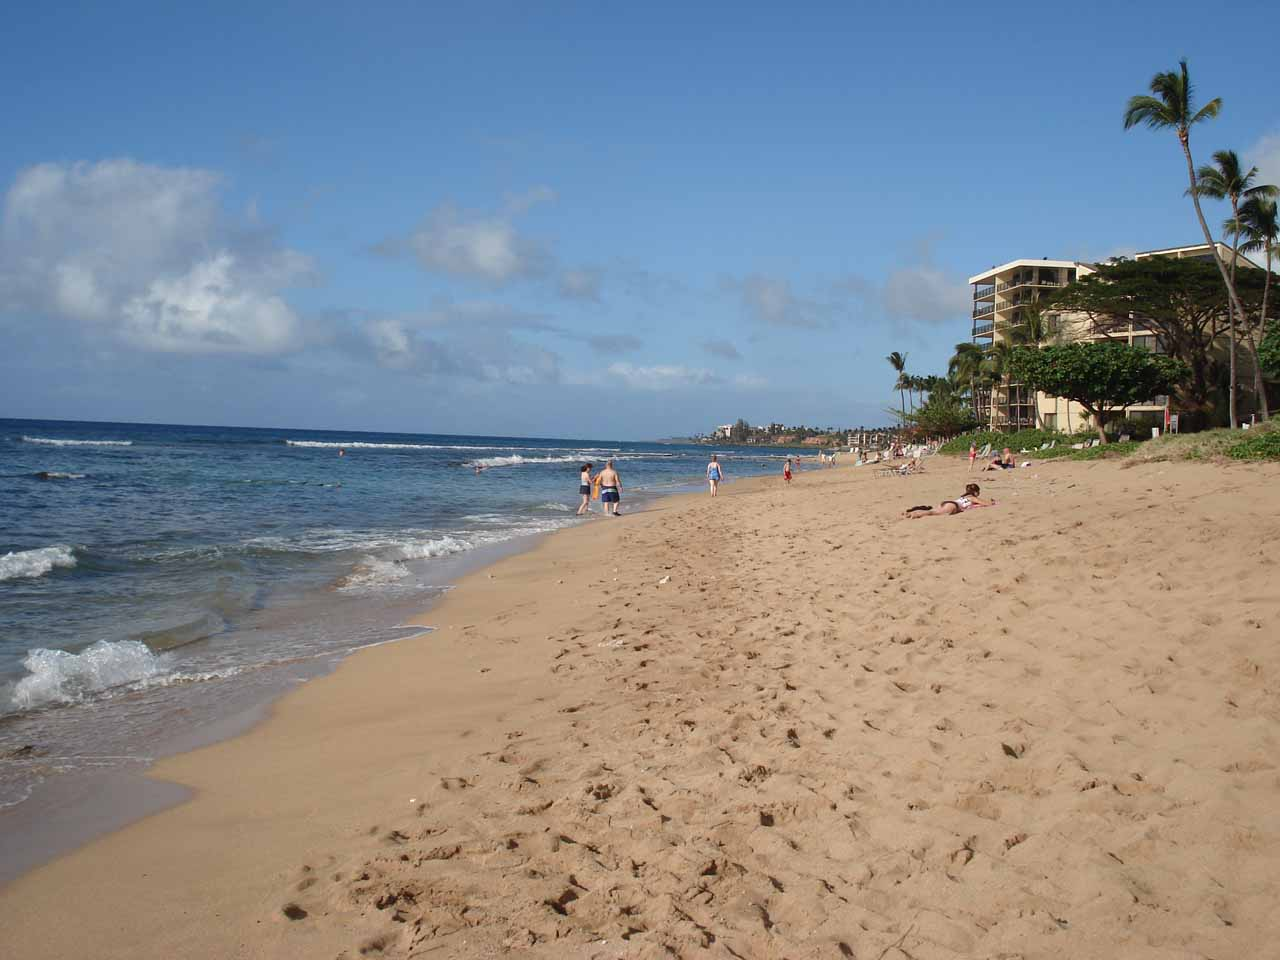 Back on the western side of West Maui at Ka'anapali, the beaches fronting the resorts were easily within reach